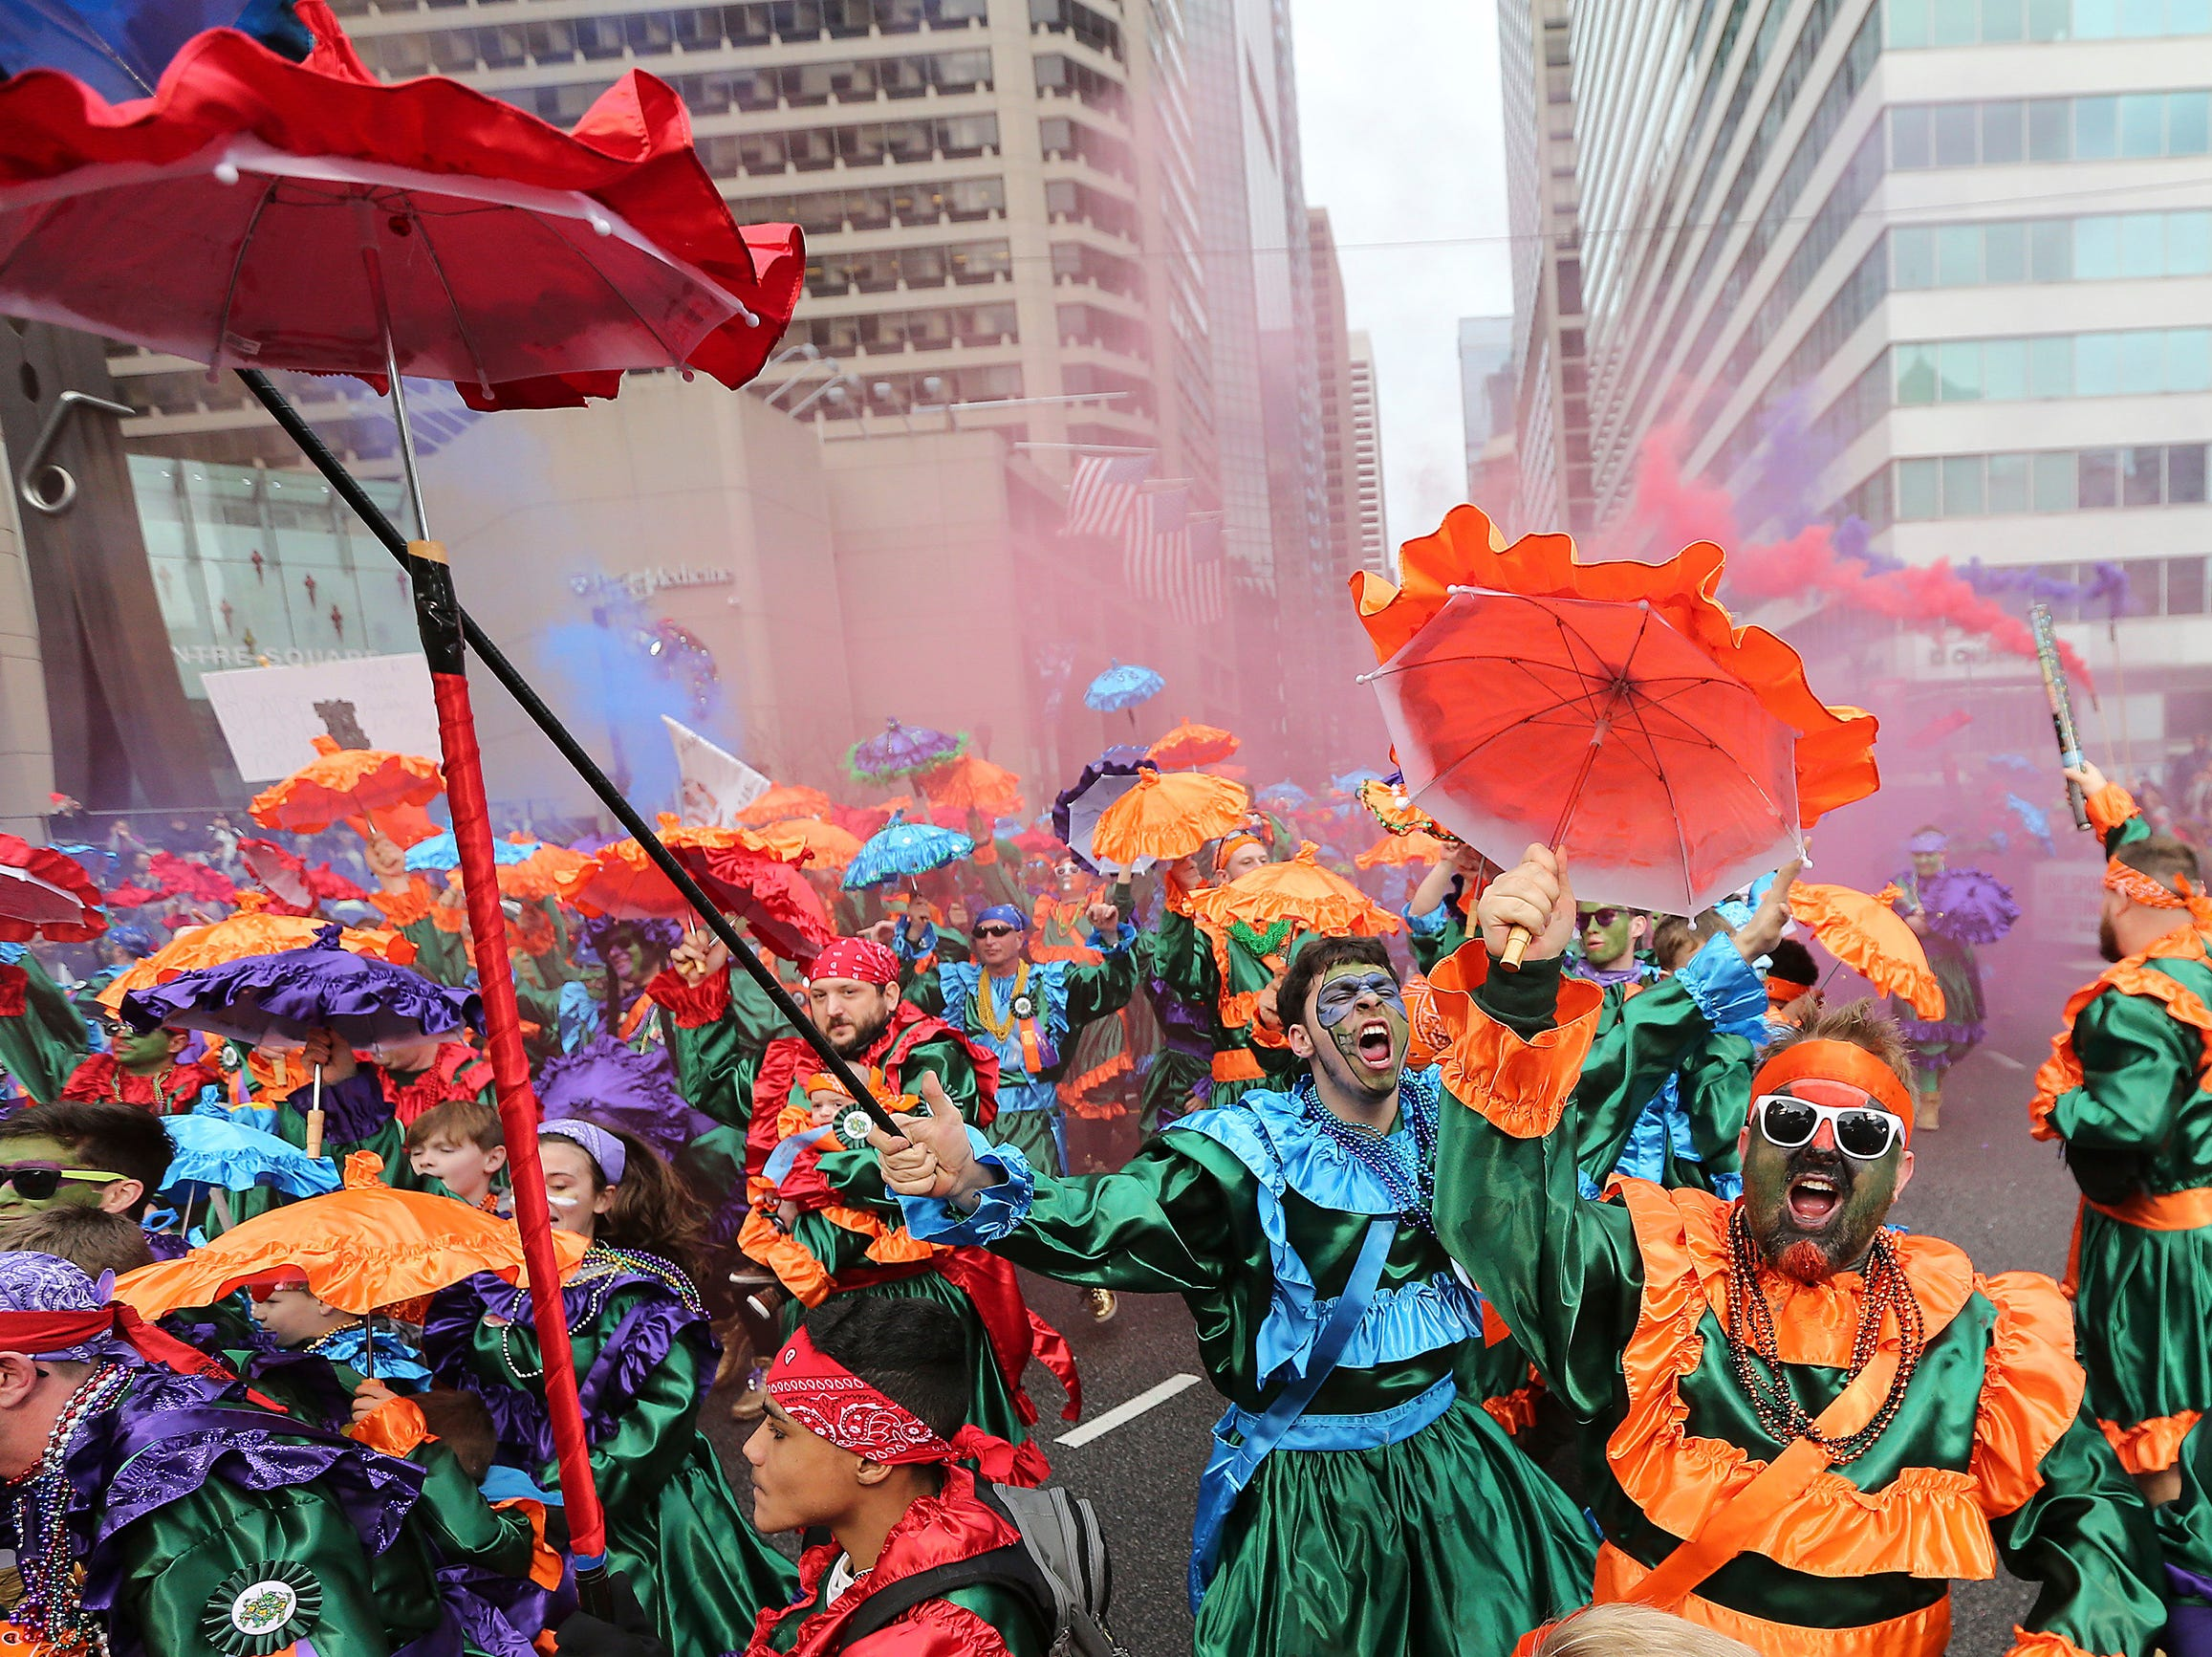 Members of the Saints Wench Brigade strut in front of the judges at City Hall during the Mummers Parade, Tuesday, Jan. 1, 2019, in Philadelphia.